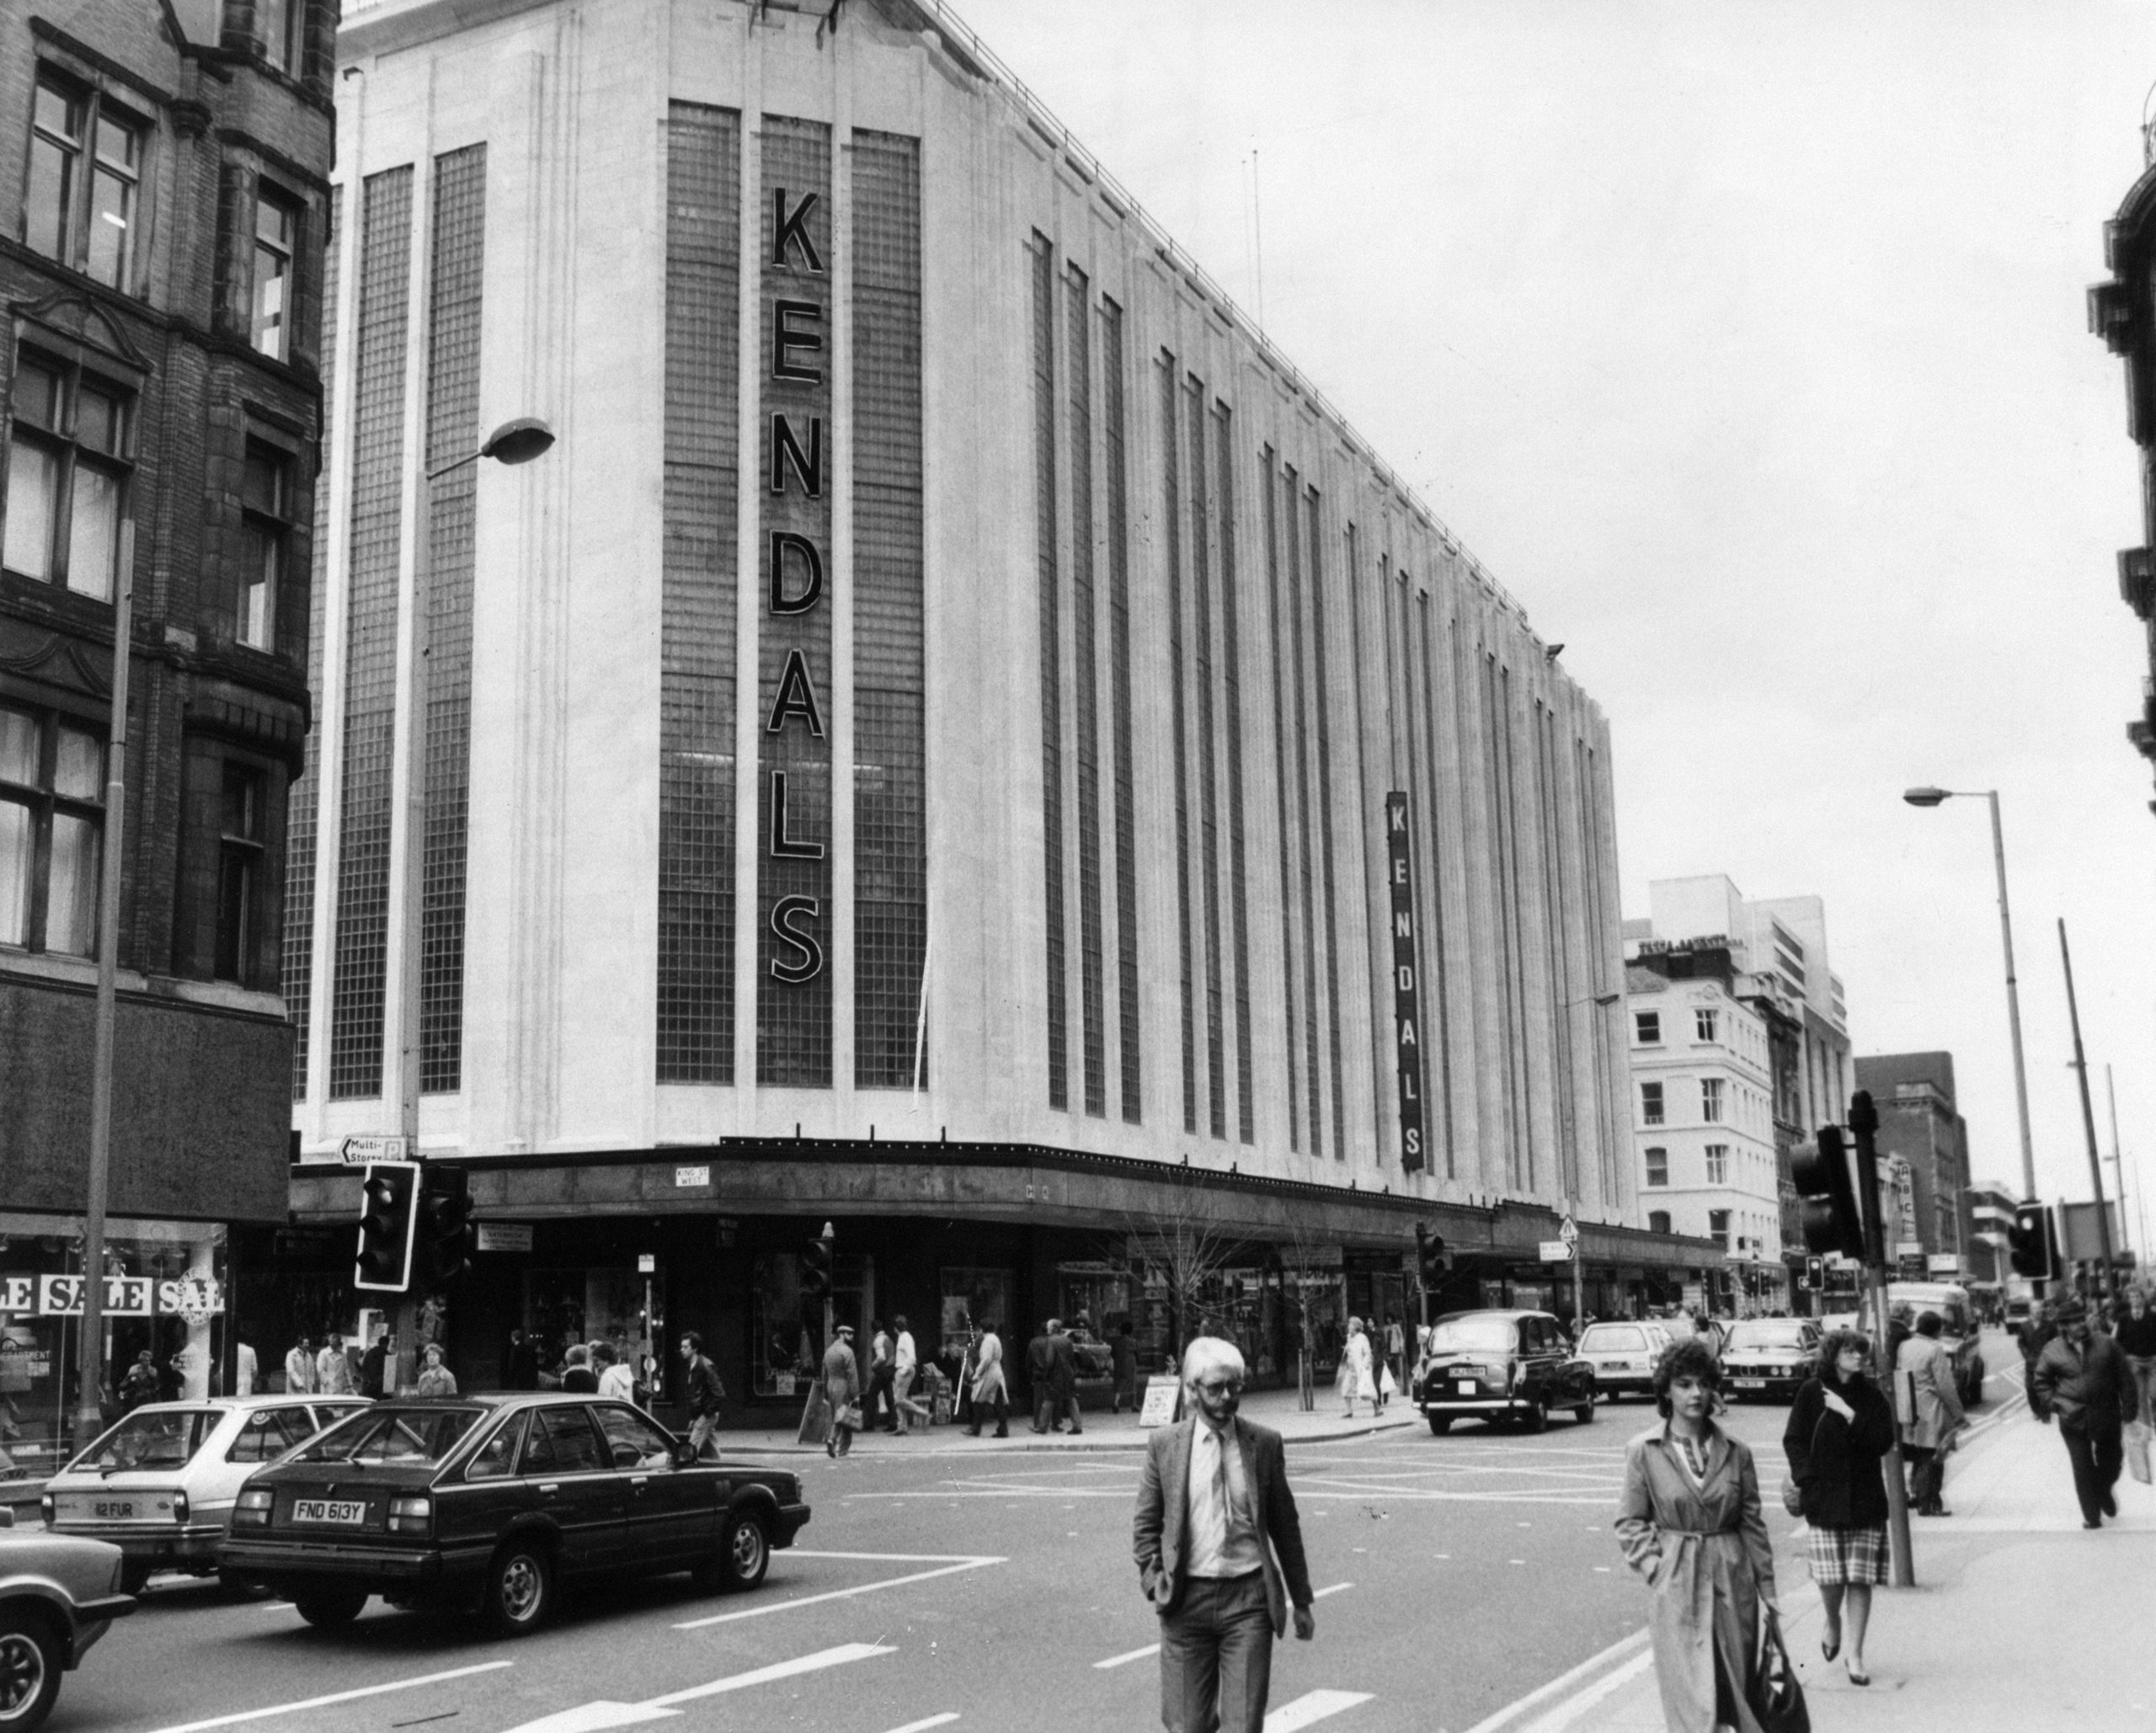 Kendals department store in Deansgate - Then